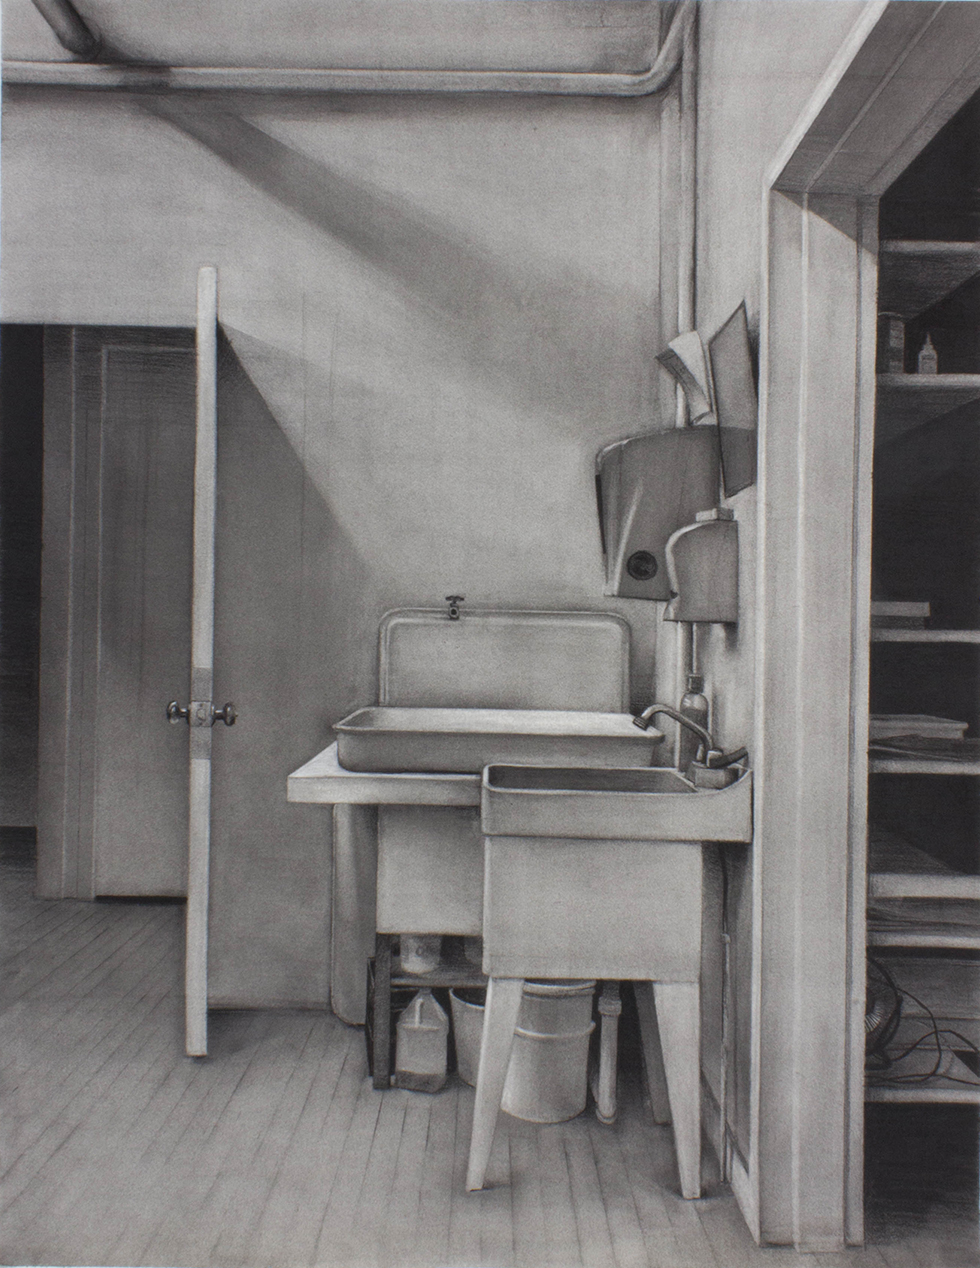 "Sean Hurley - STUDIO SINK, JOHNSON, VT - 48"" x 36"" - Charcoal"